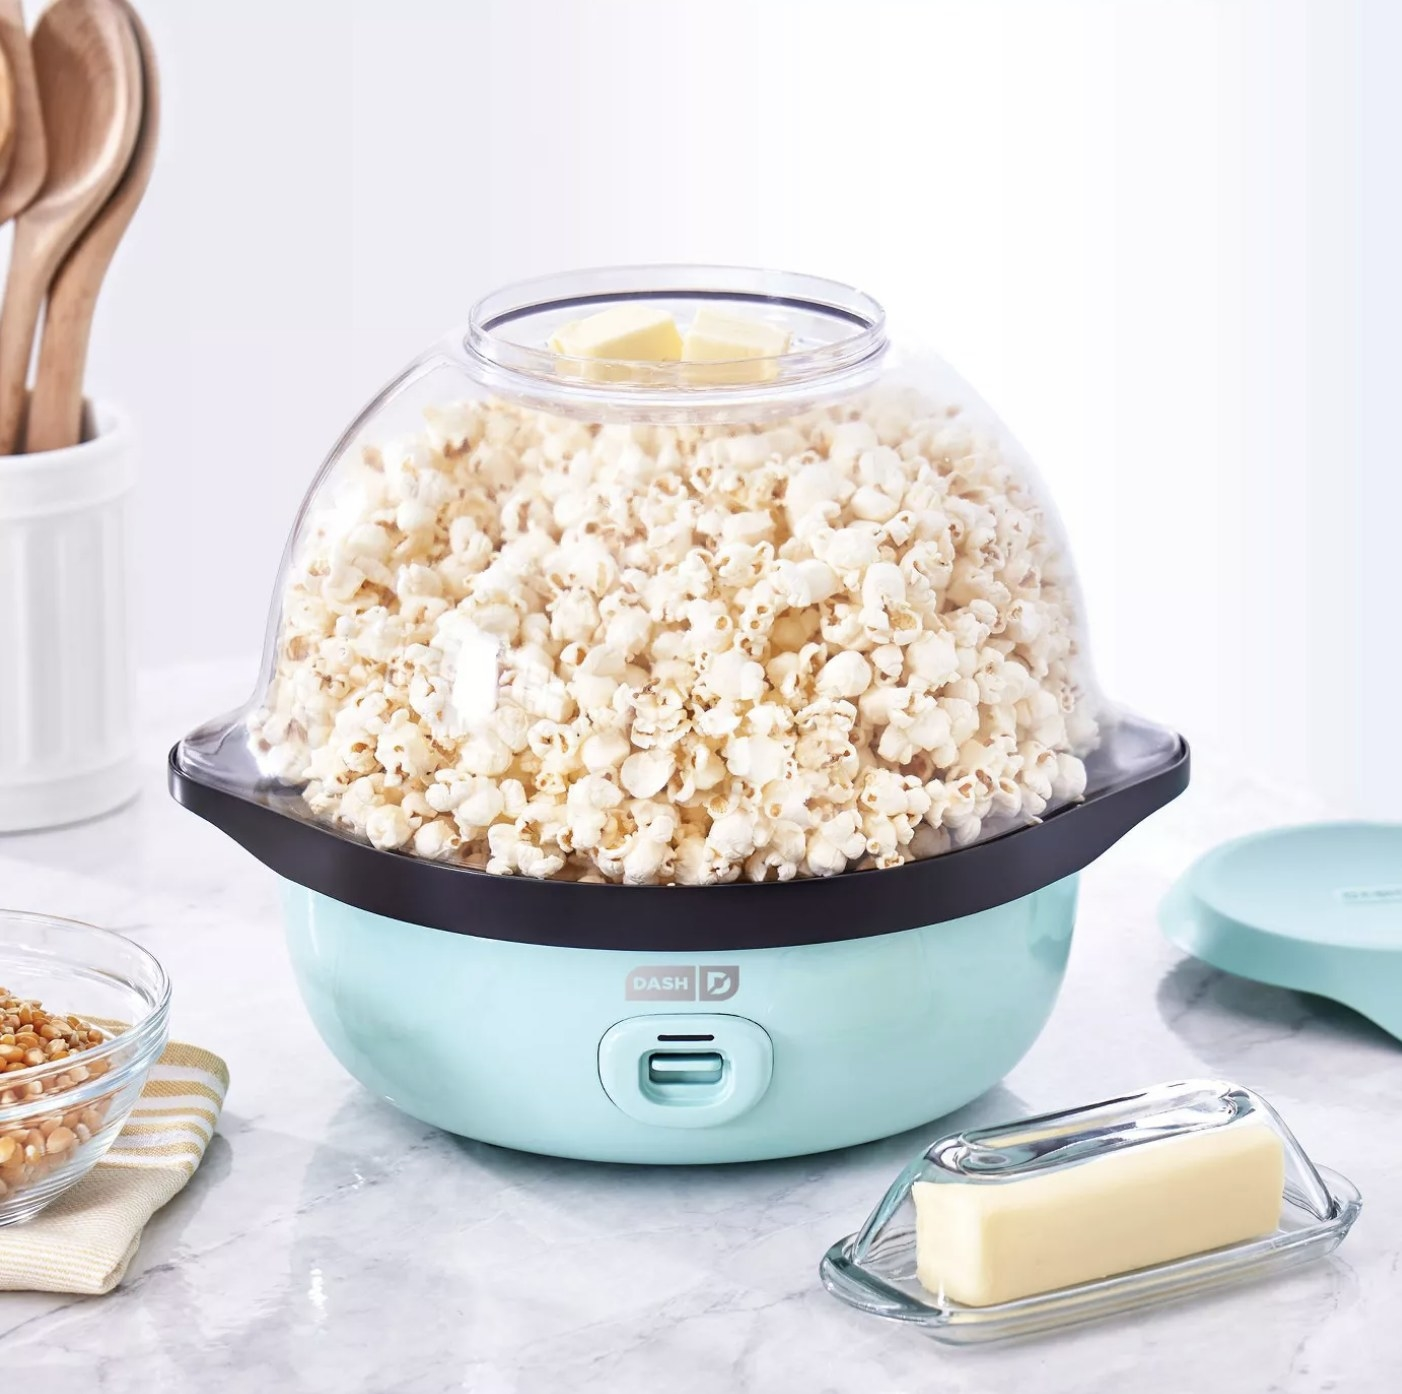 A light blue popcorn maker in a kitchen space